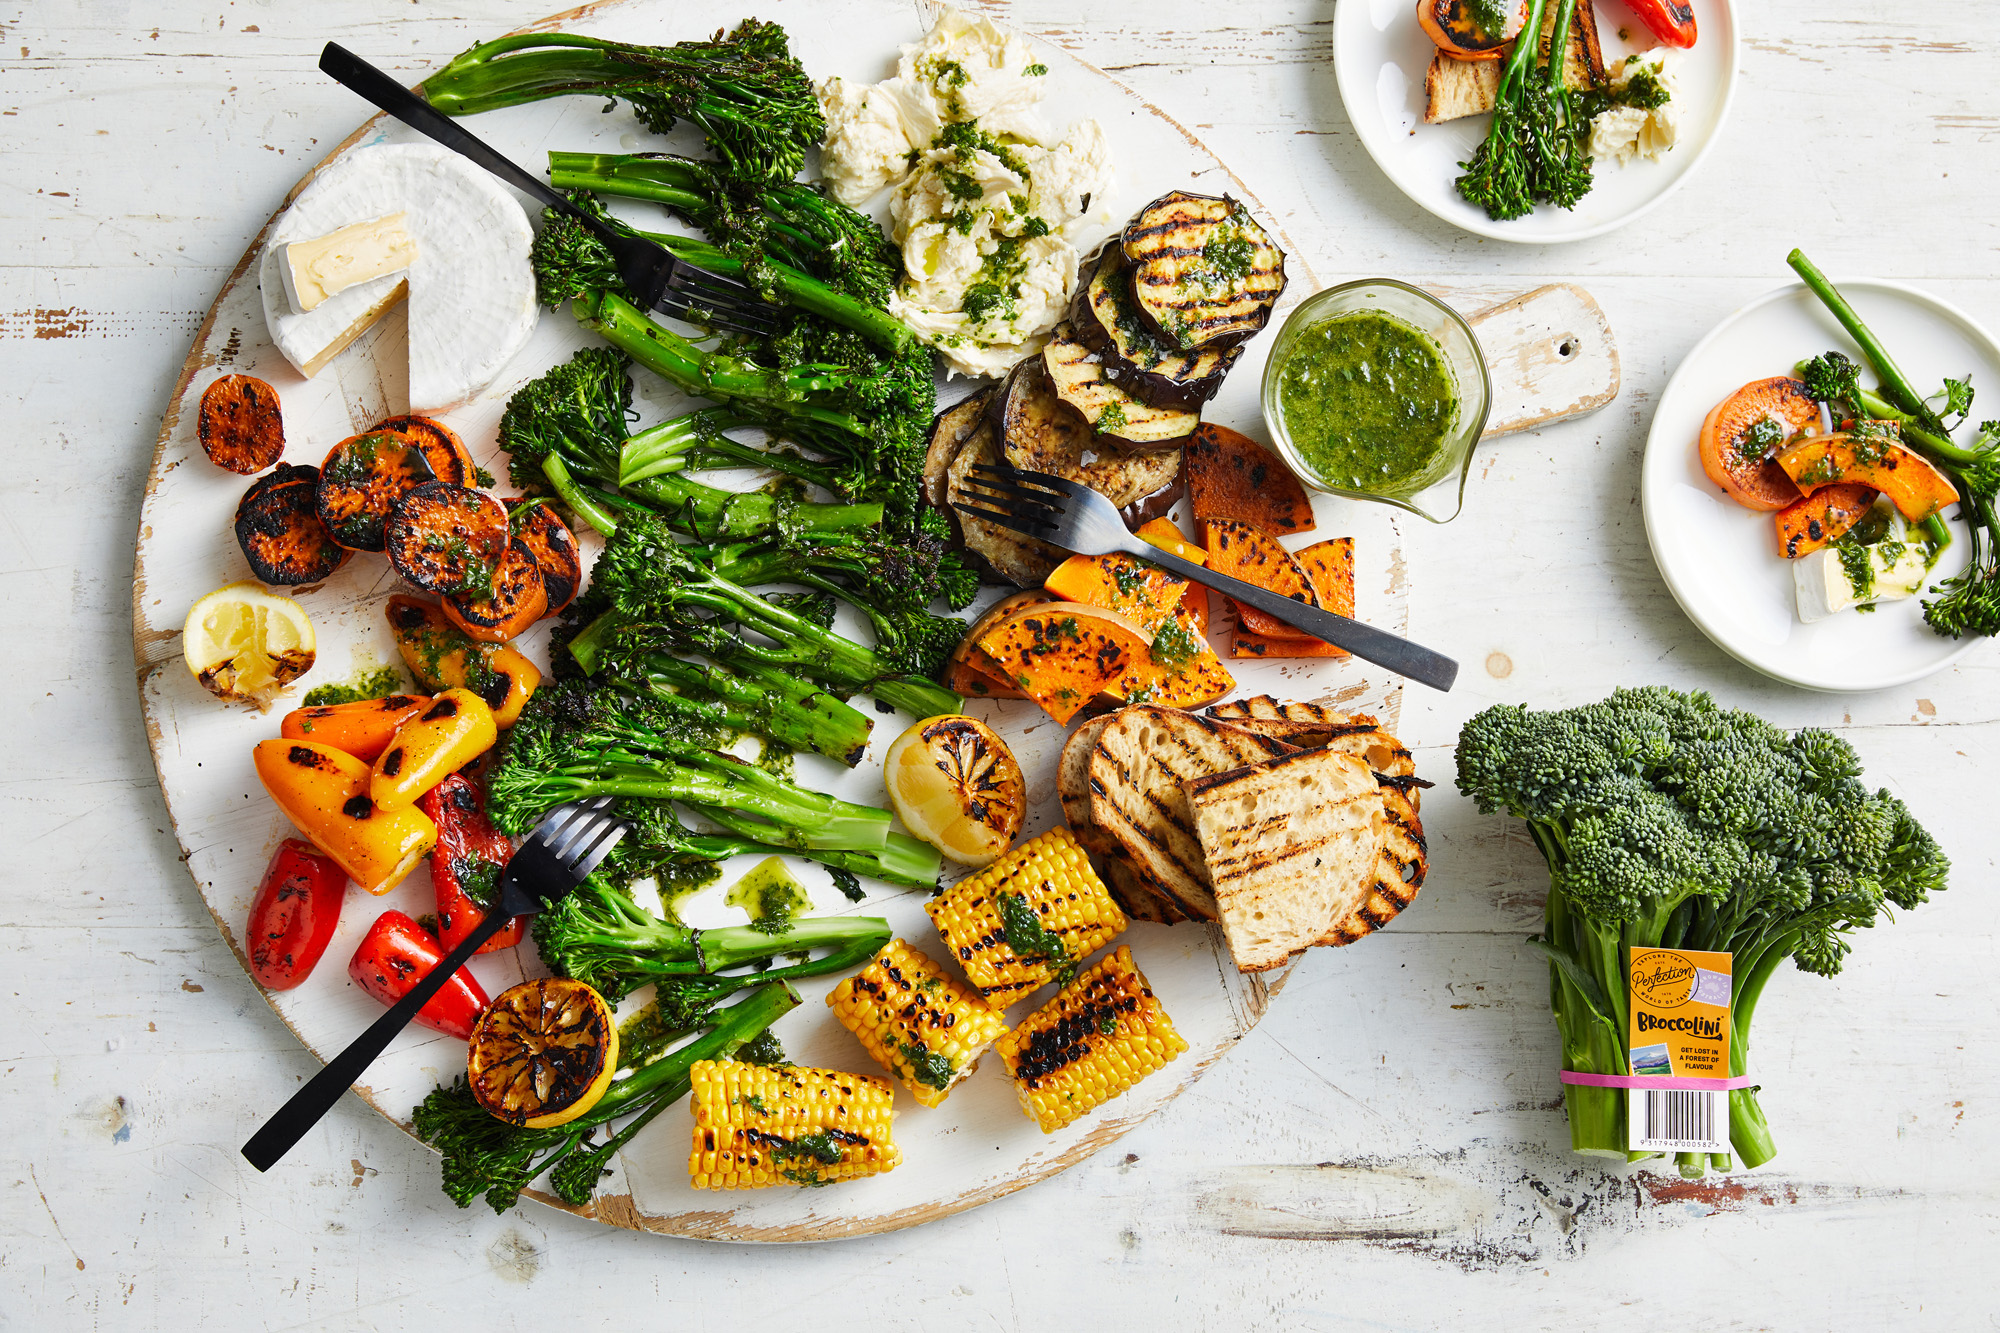 Recipe_LR_Broccolini_Minicaps_Chargrilled Vegetable Board_Janelle Bloom_2020_02